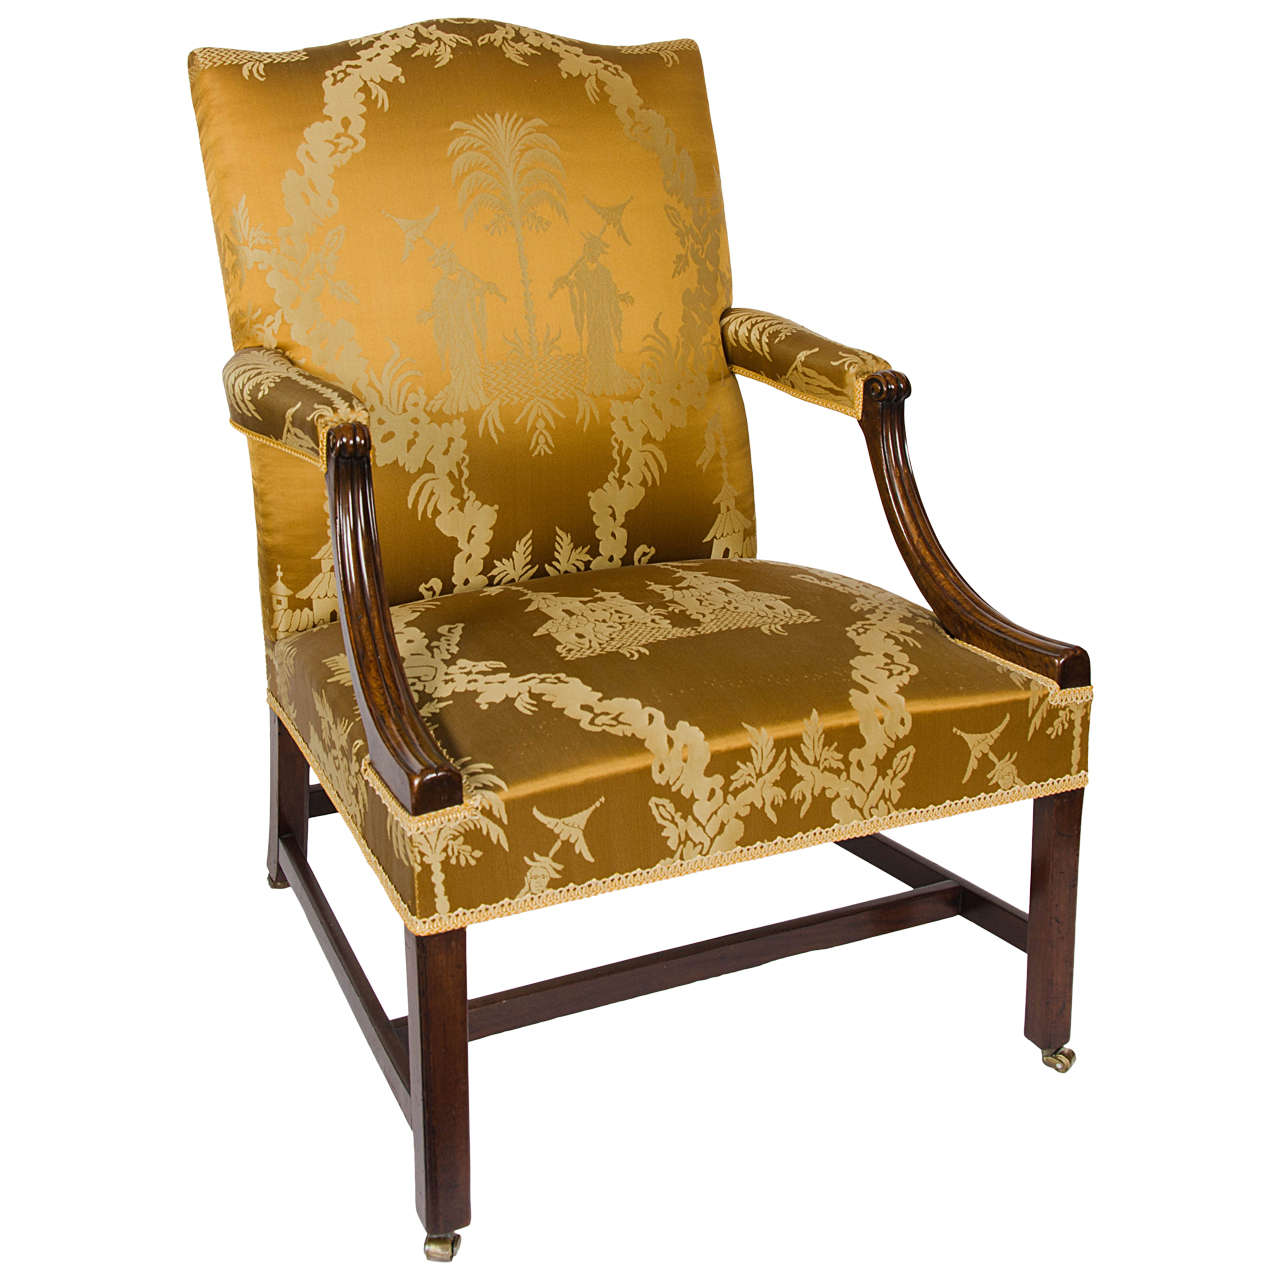 Georgian Chairs 121 For Sale at 1stdibs